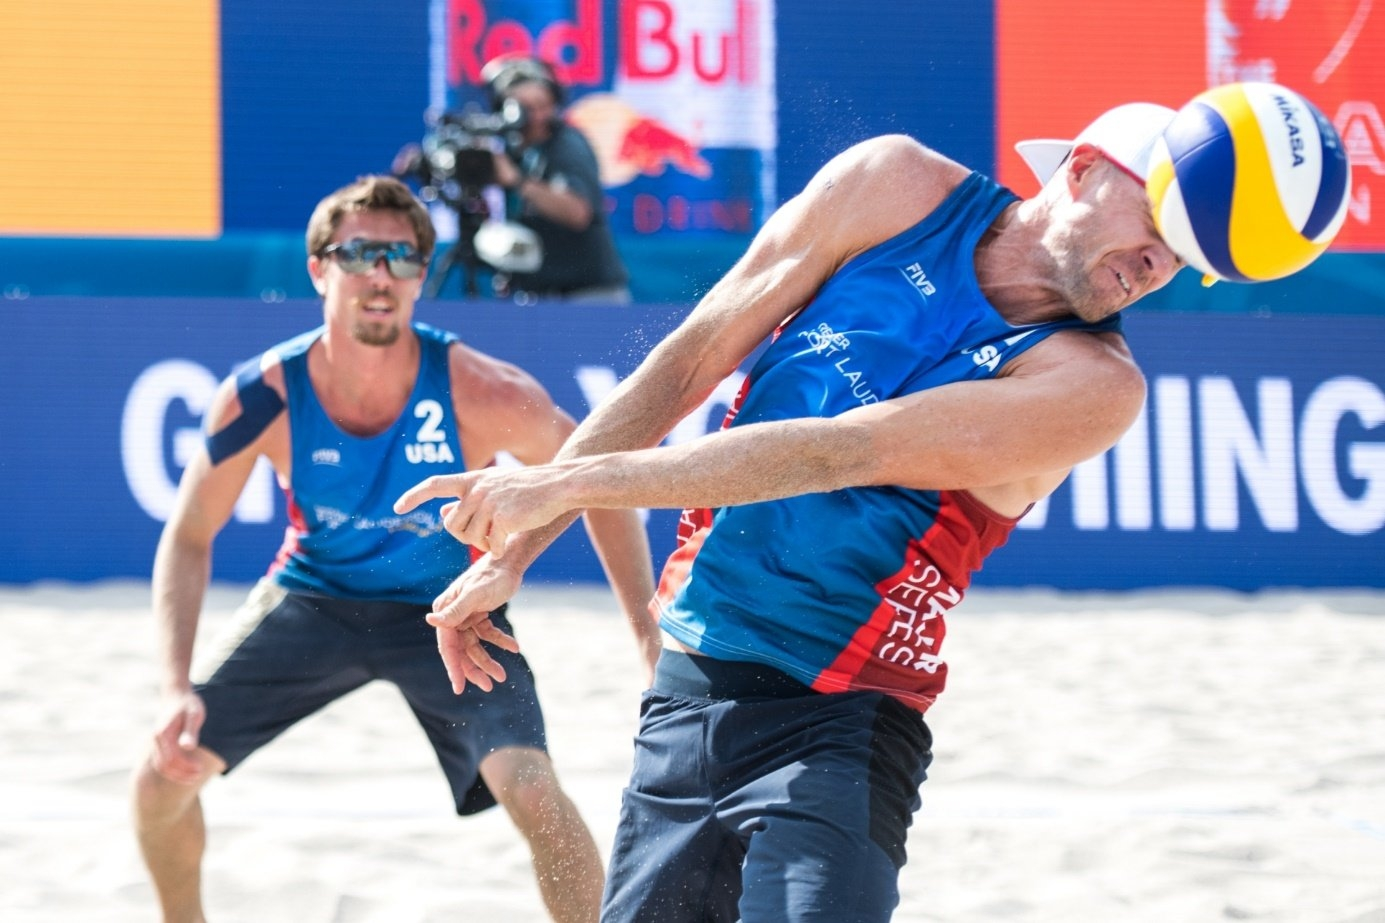 Just gotta get it…. Grrr… Aaaah! (Just some of the sound effects from beach volleyball headers) Photocredit: Mihai Stetcu